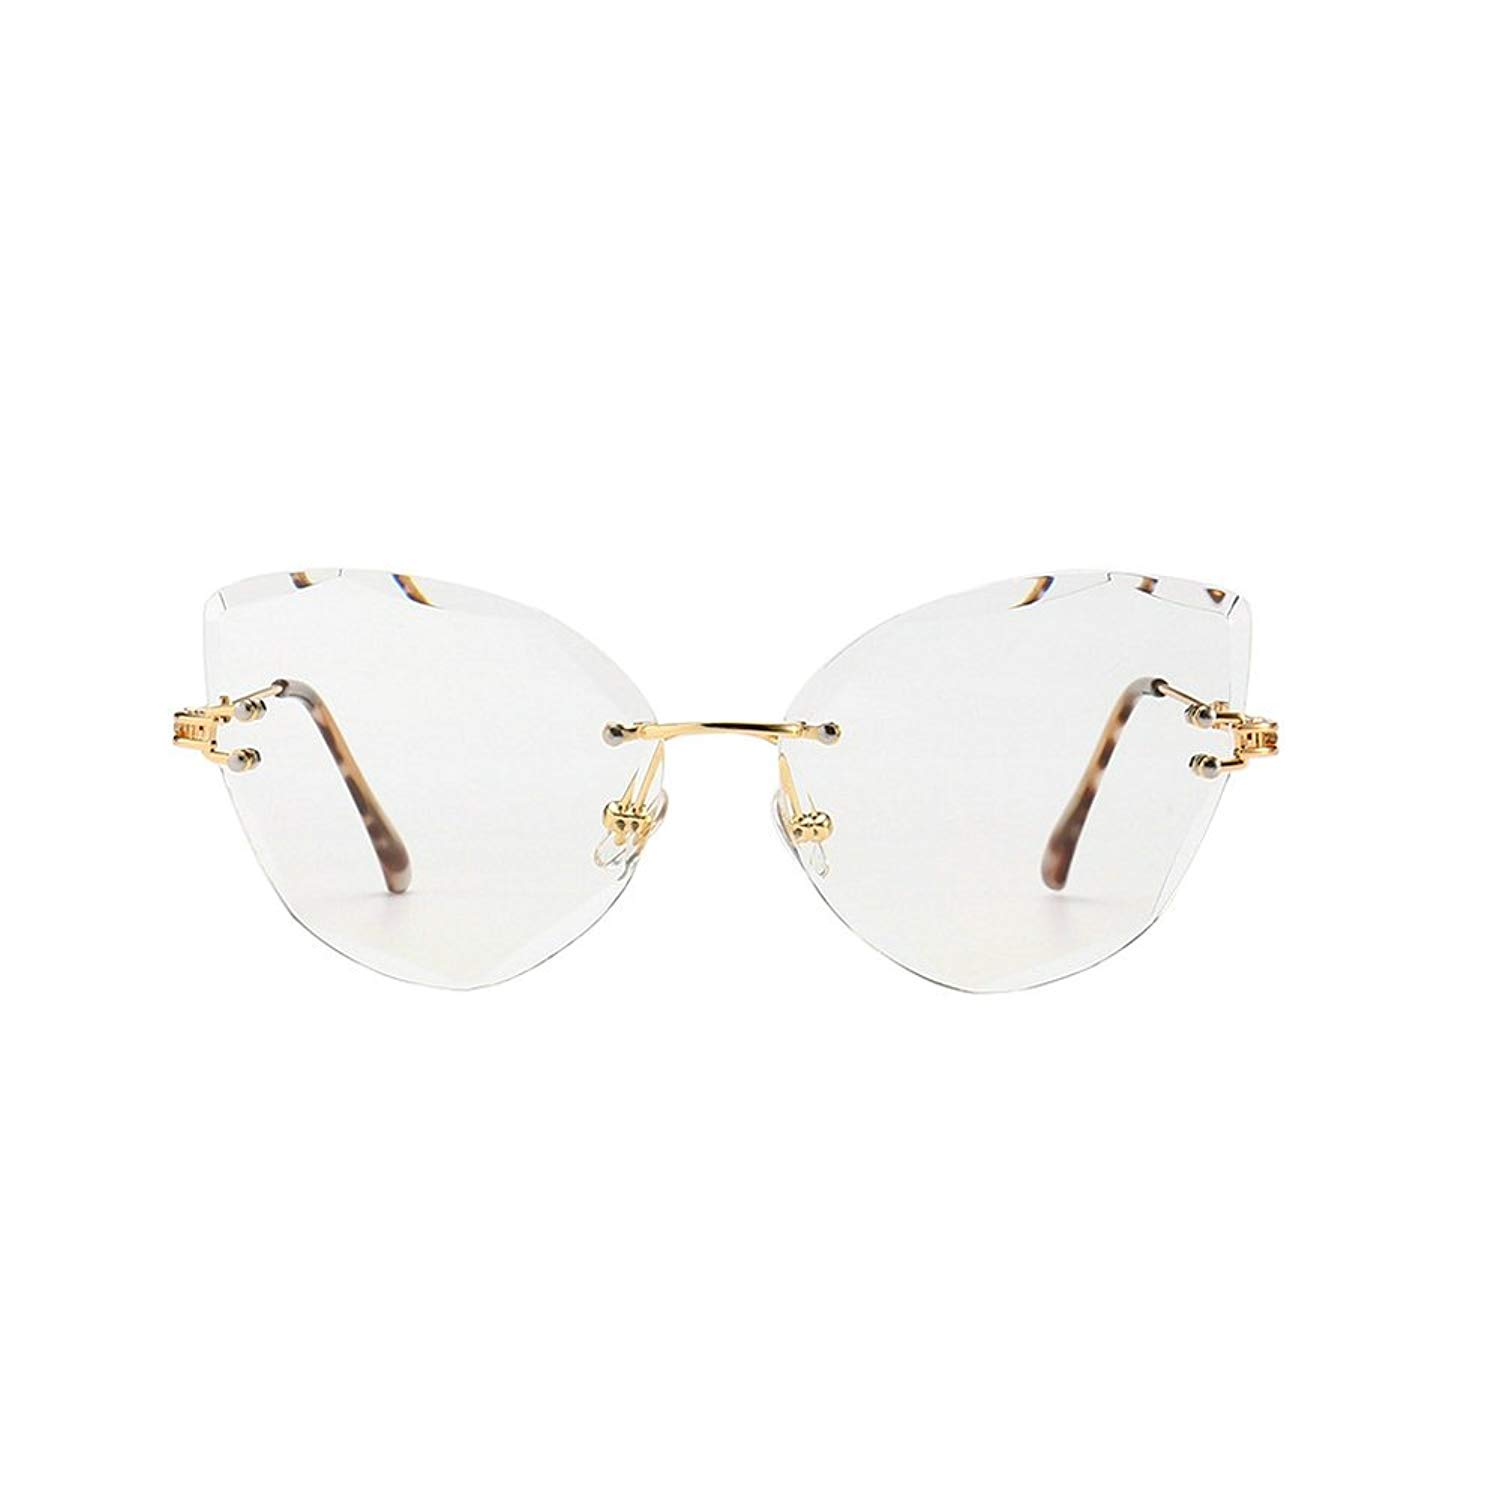 65b3d3de3d4 Get Quotations · MINCL 2018 Hot Sale Rimless Oversized Sexy Cateye Sunglasses  Womens Diamond Trimming Glasses UV400